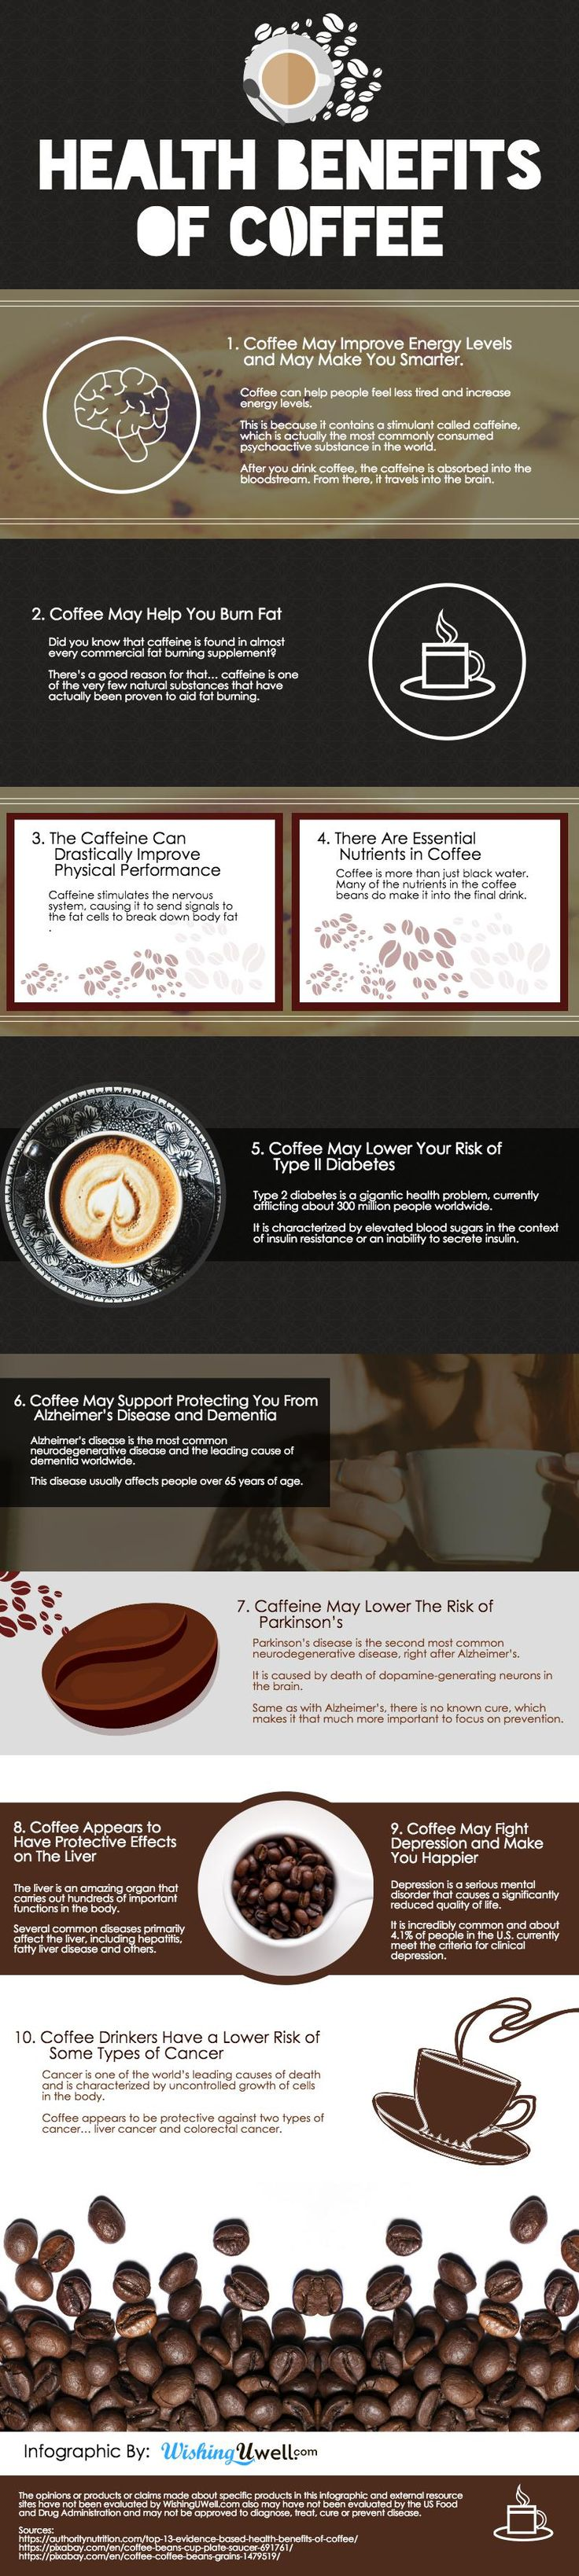 86b84fa0b761a8417c63b1cf9cf85f4e  coffee infographic benefits of coffee Image Result For Health Benefits Of Coffee